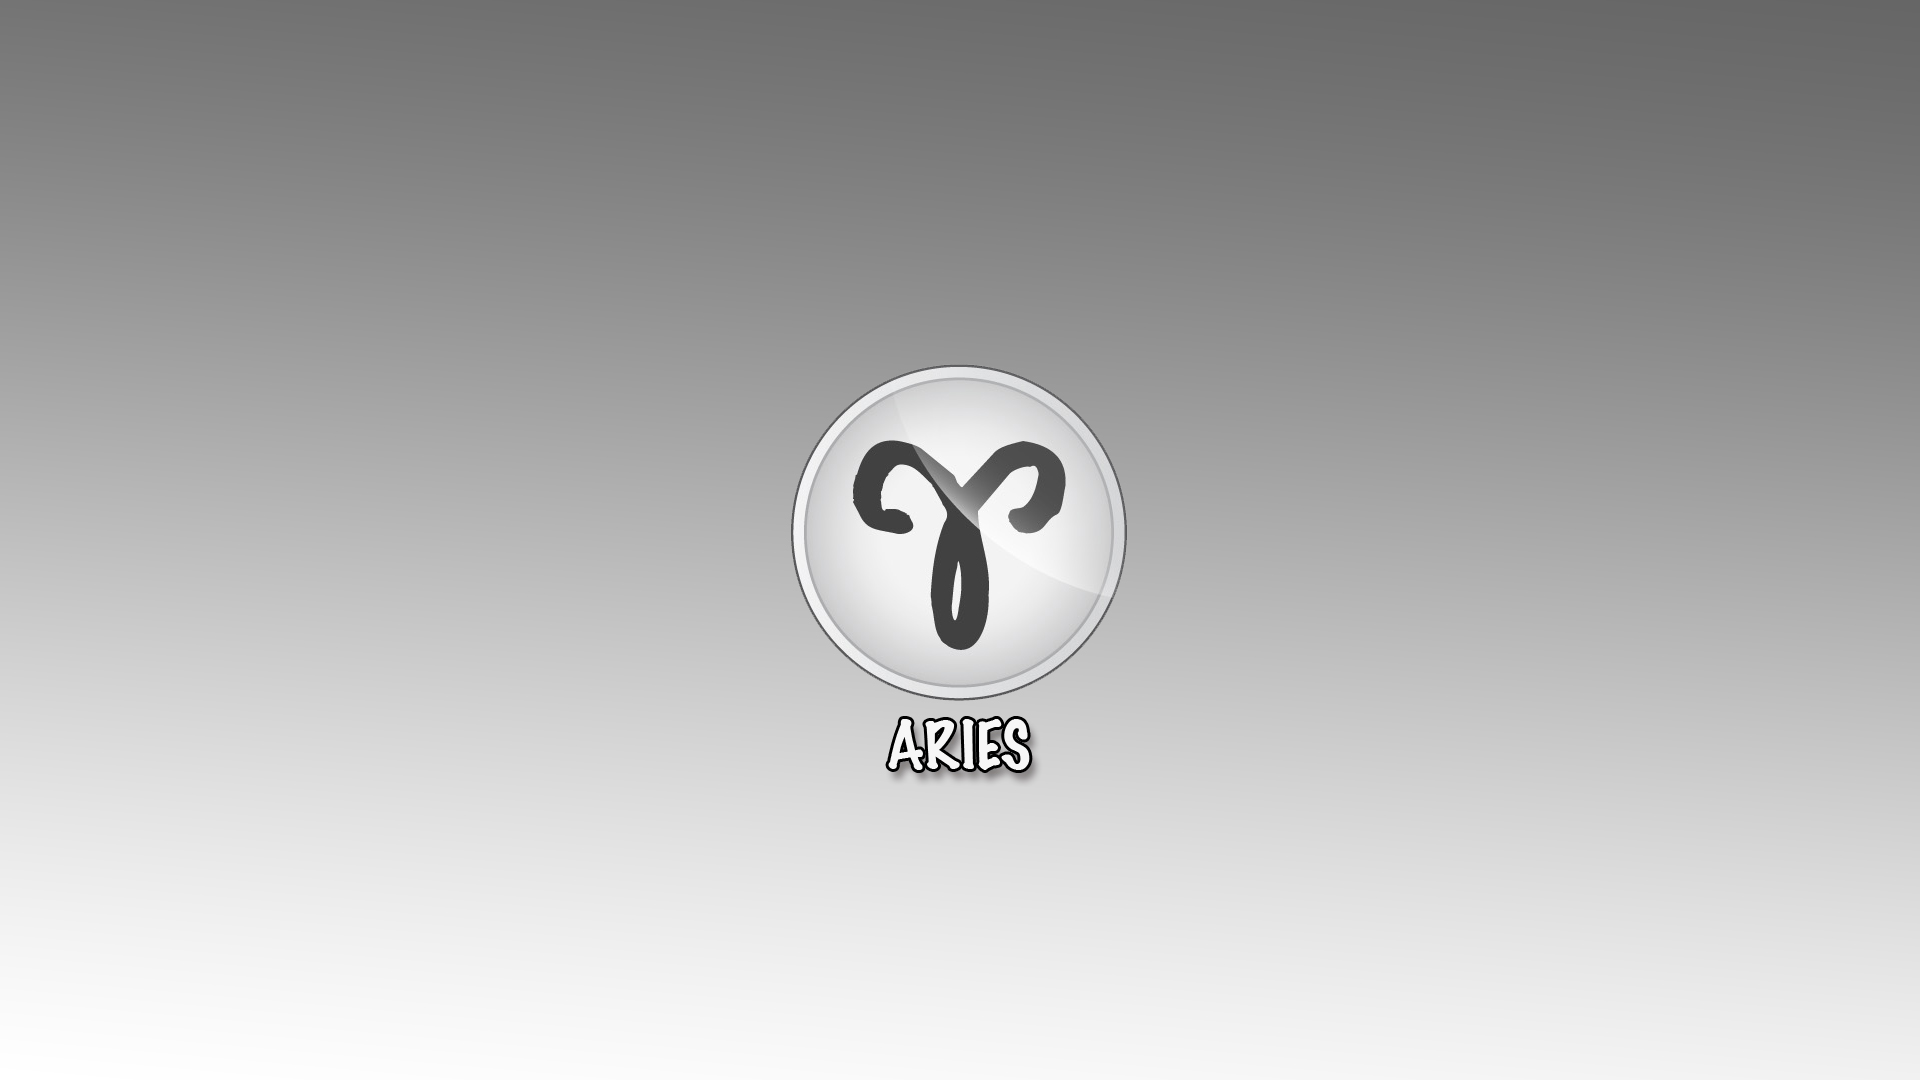 Fondos-HD-de-Aries-Fondosdepantalla.top (16)